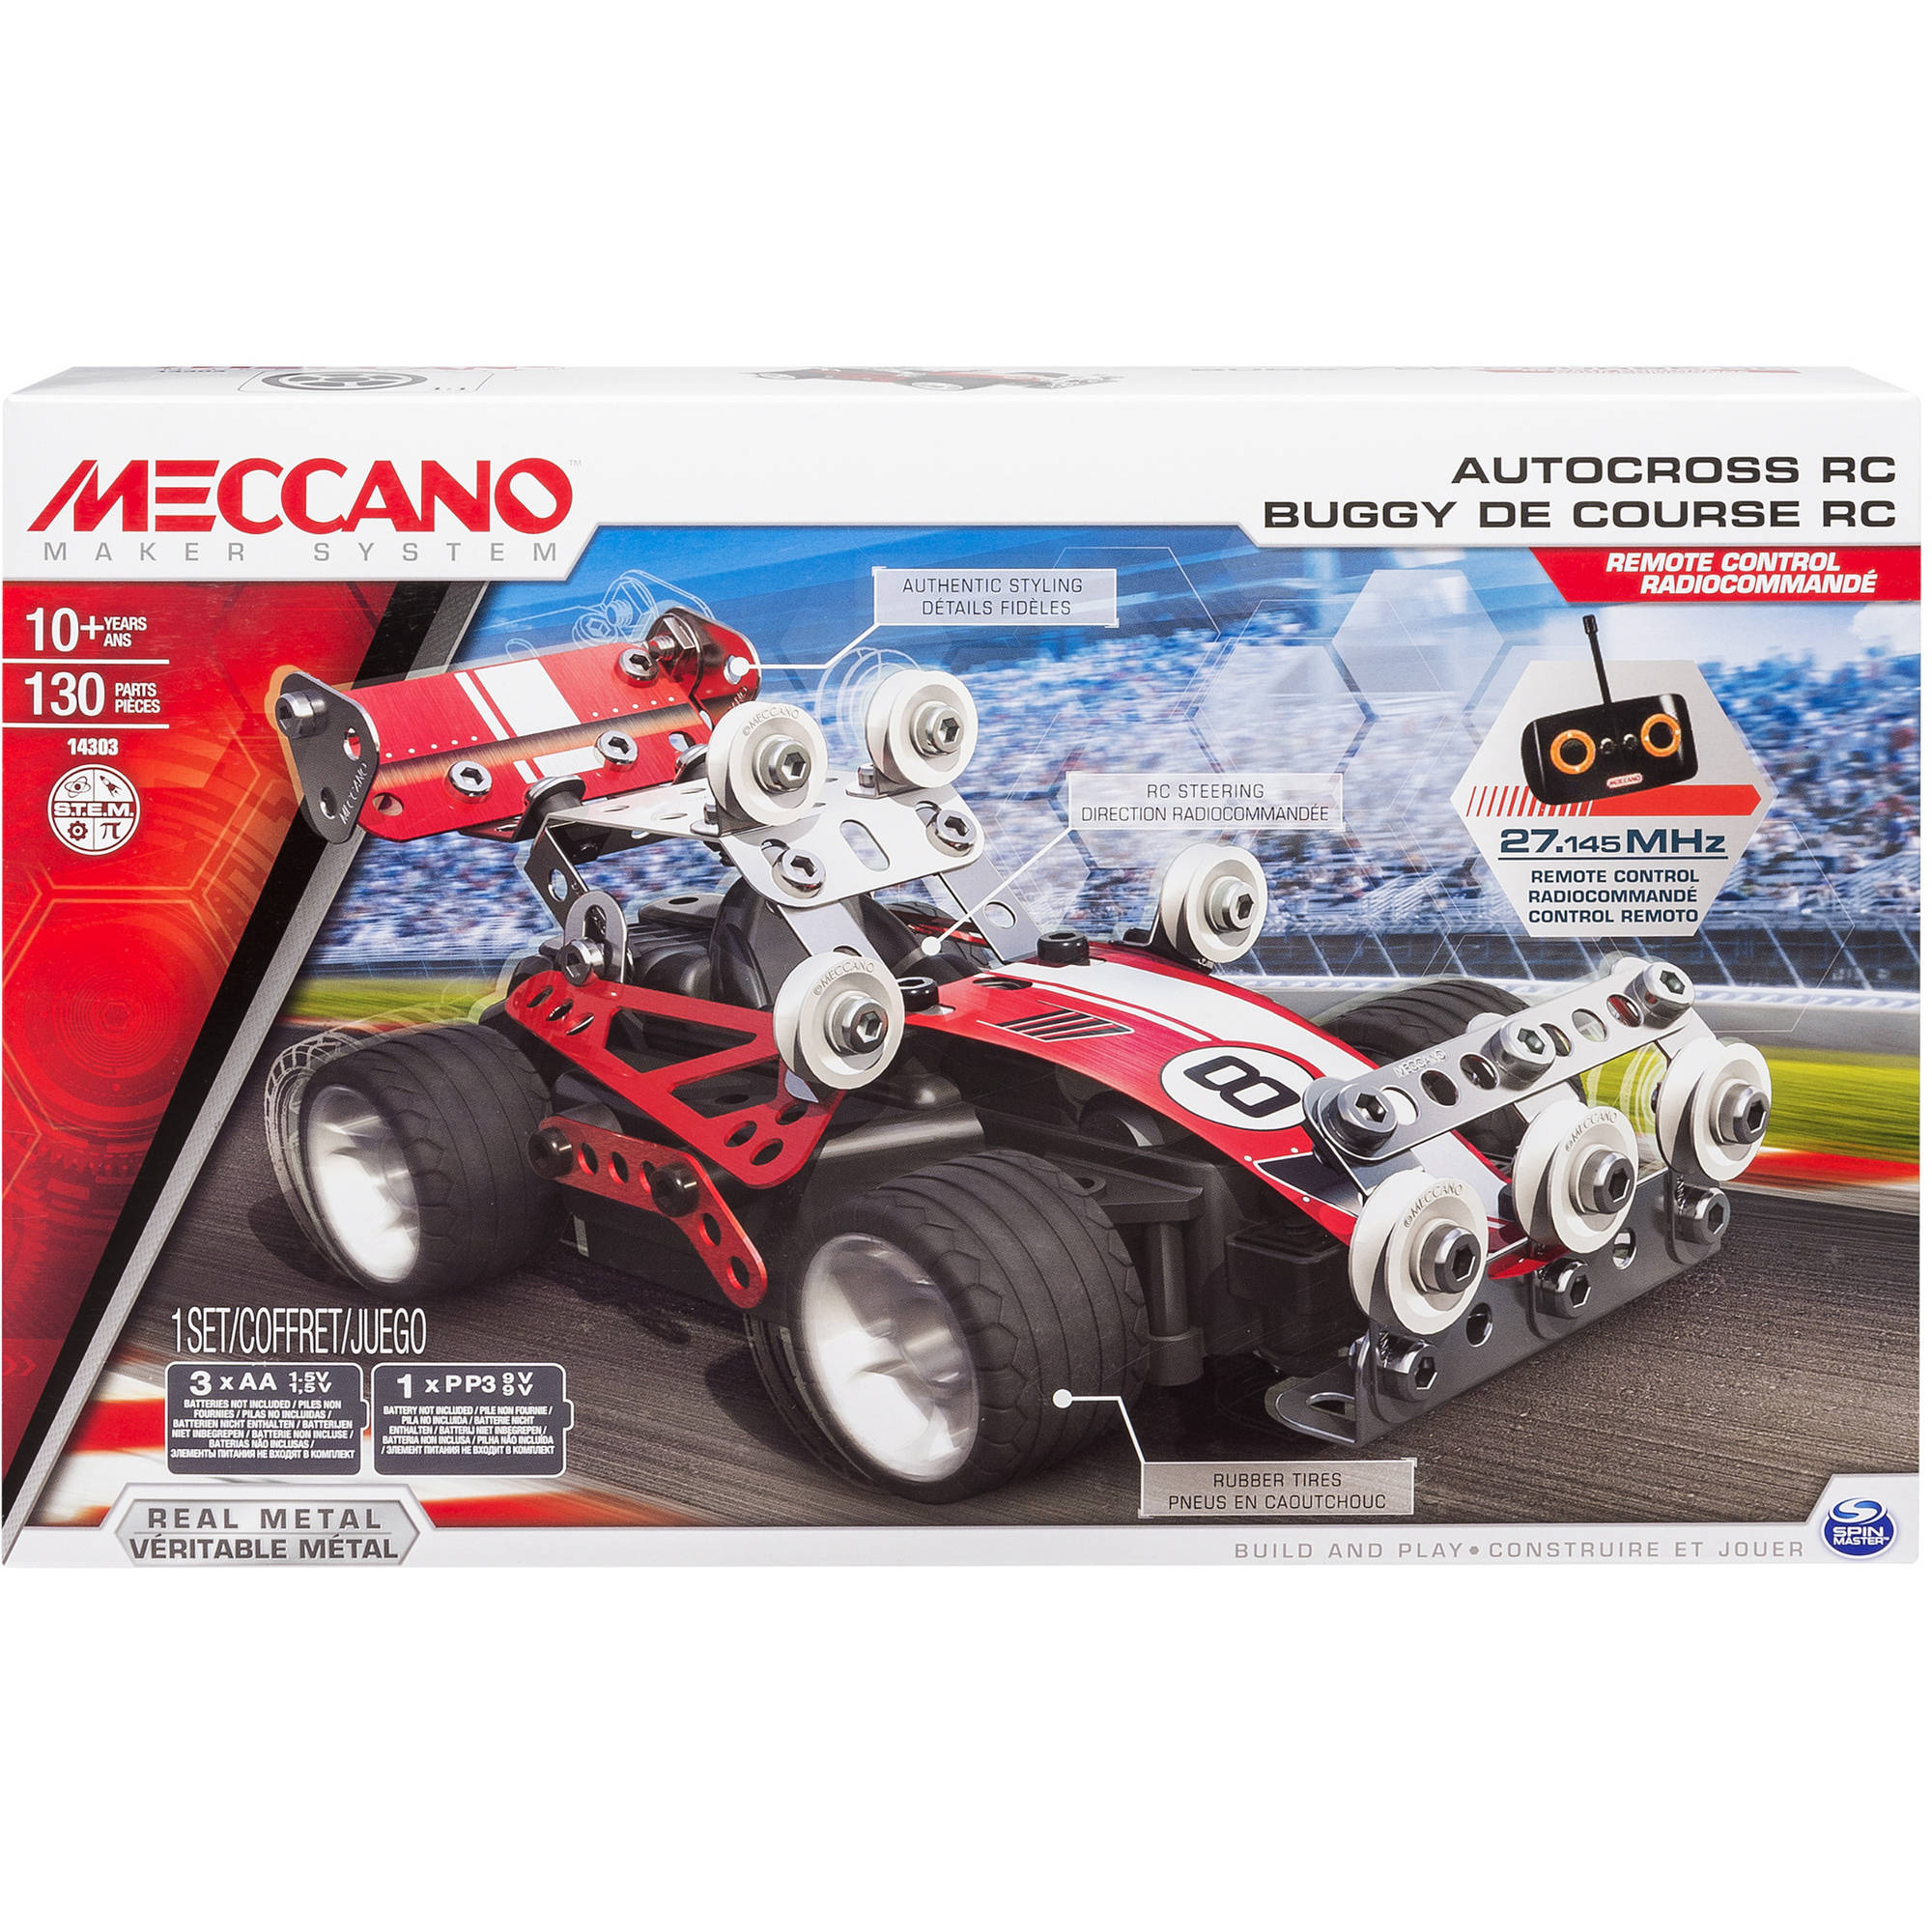 Meccano Autocross RC Model Set